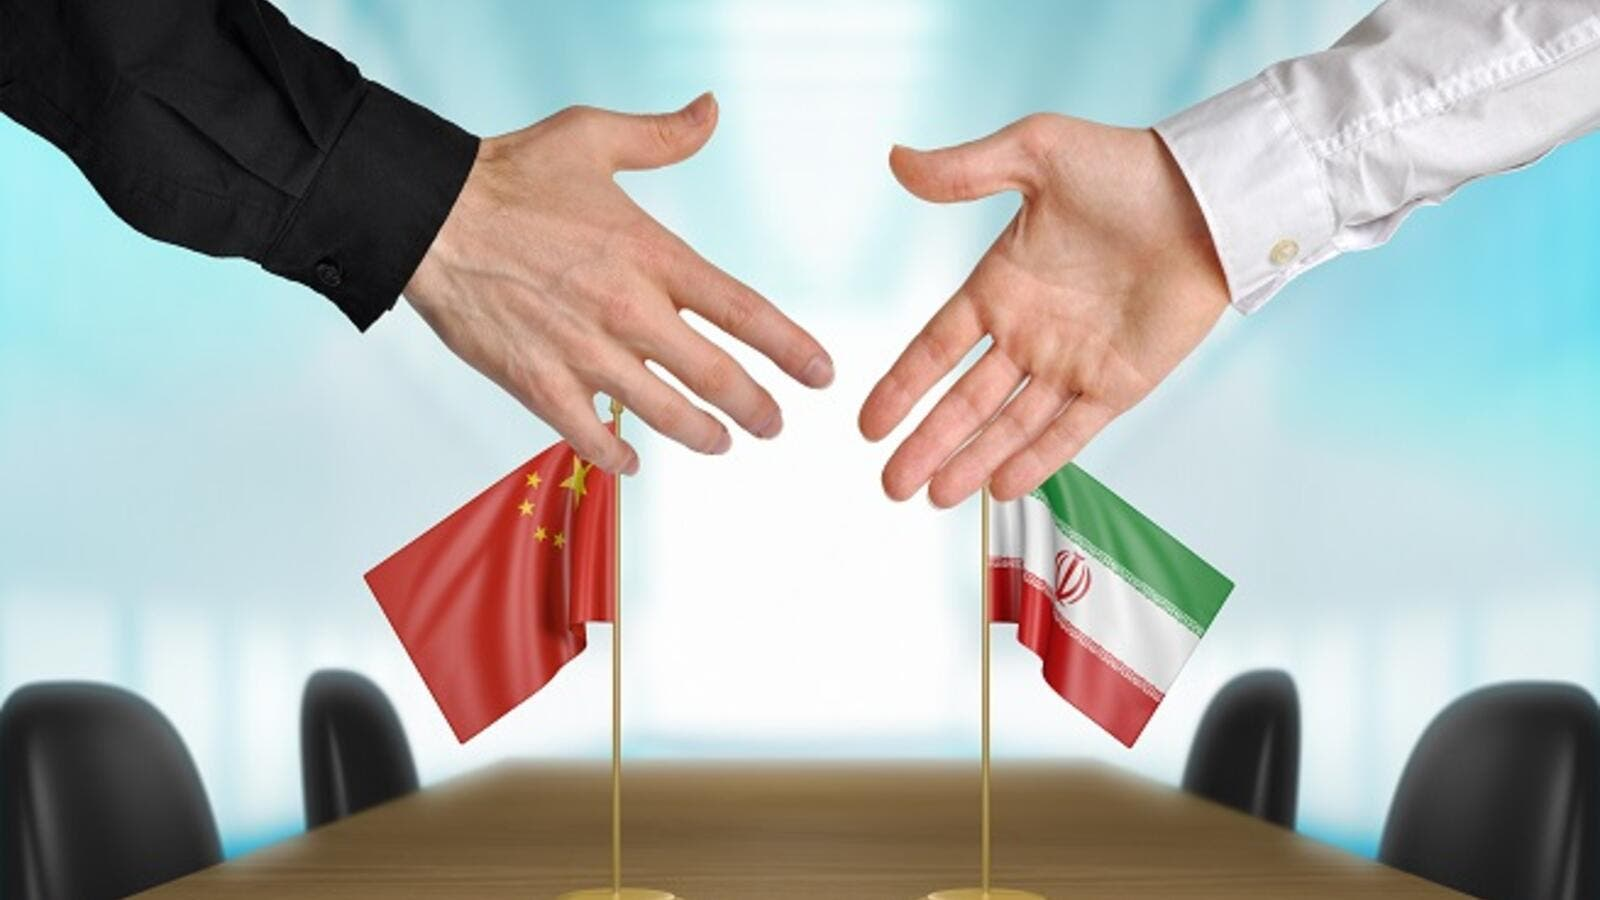 China is trying to expand and develop its relation with the Islamic Republic of Iran, using different organizations and institutions, in cooperation with the private sector, the deputy foreign minister emphasized. (Shutterstock)